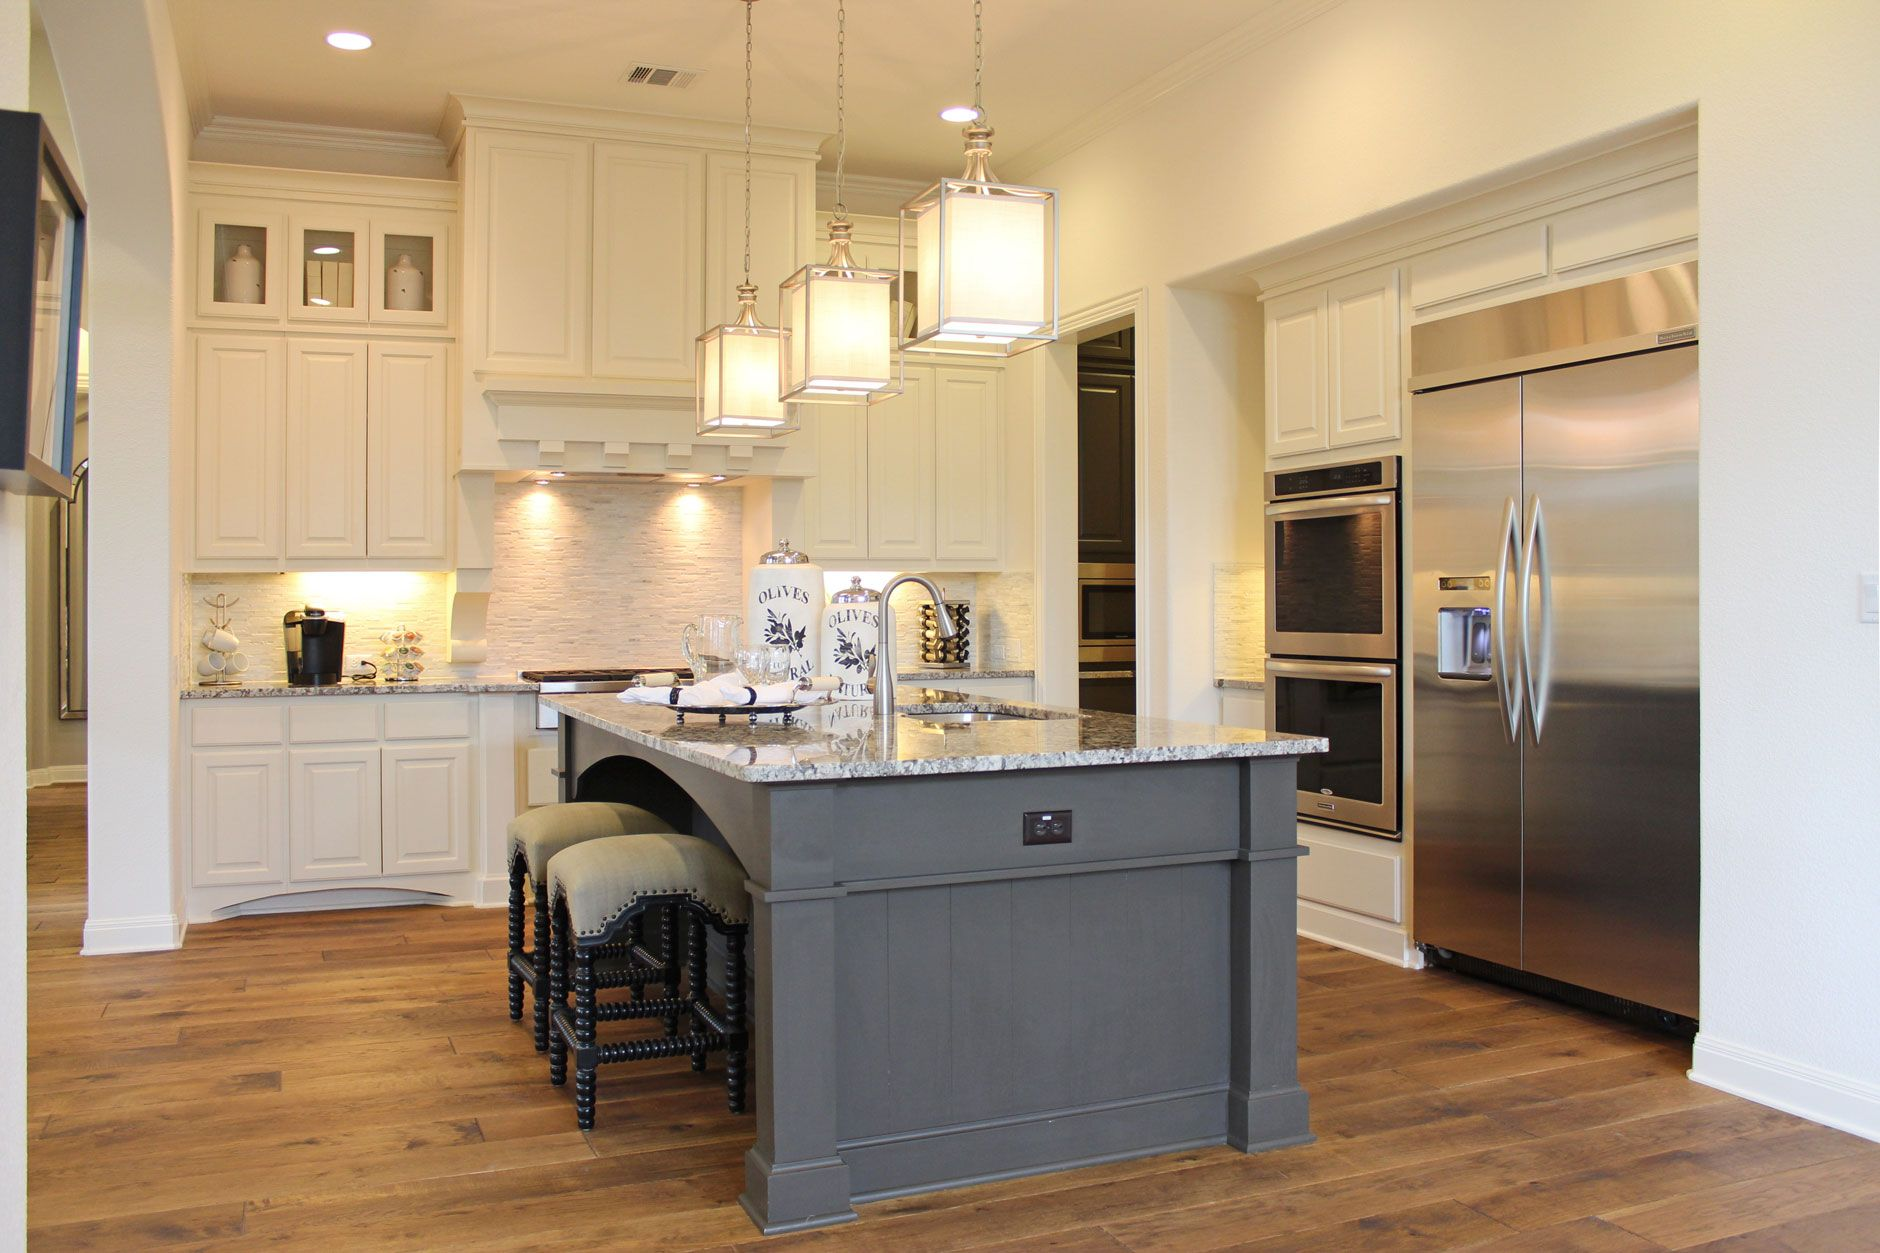 Best Burrows Cabinets Kitchen Cabinets In Bone White And Gray 400 x 300